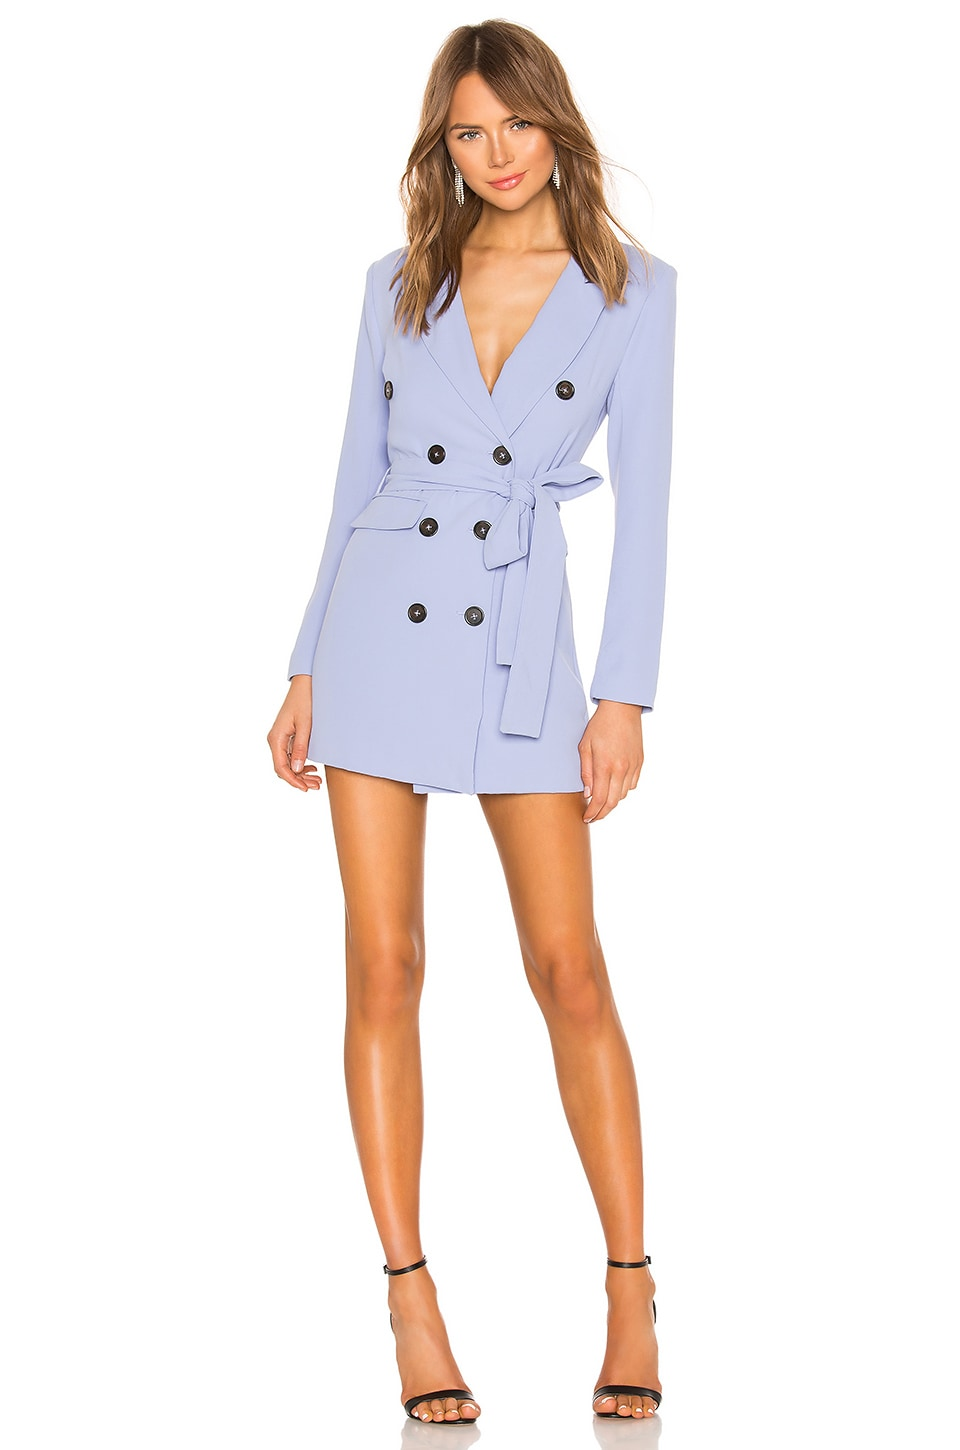 Lovers + Friends Diana Blazer Dress in Periwinkle